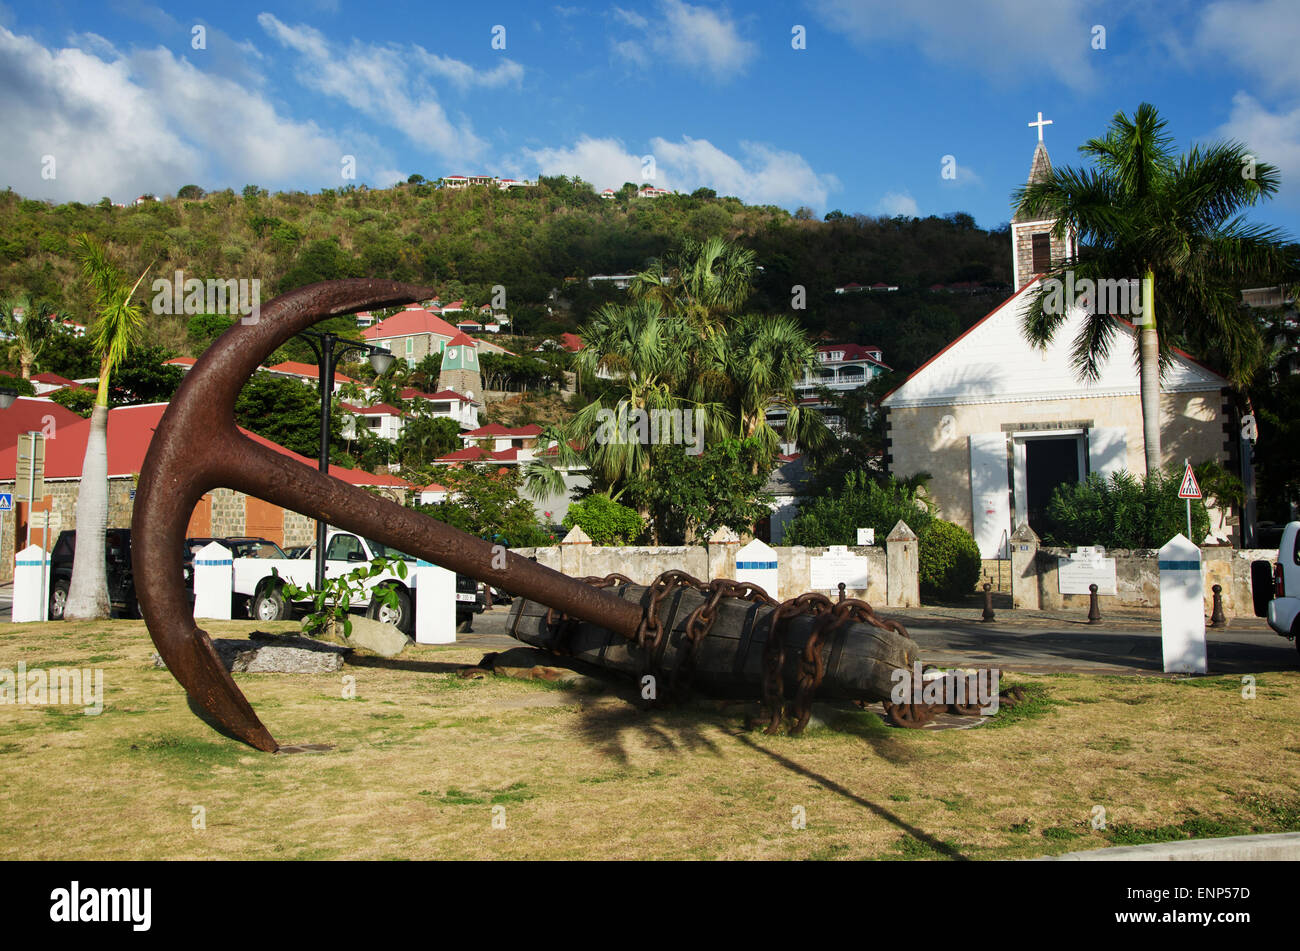 Saint-Barthélemy, French West Indies, Caribbean: a sculpture in the form of an anchor, the skyline of Gustavia and the Anglican Church Stock Photo